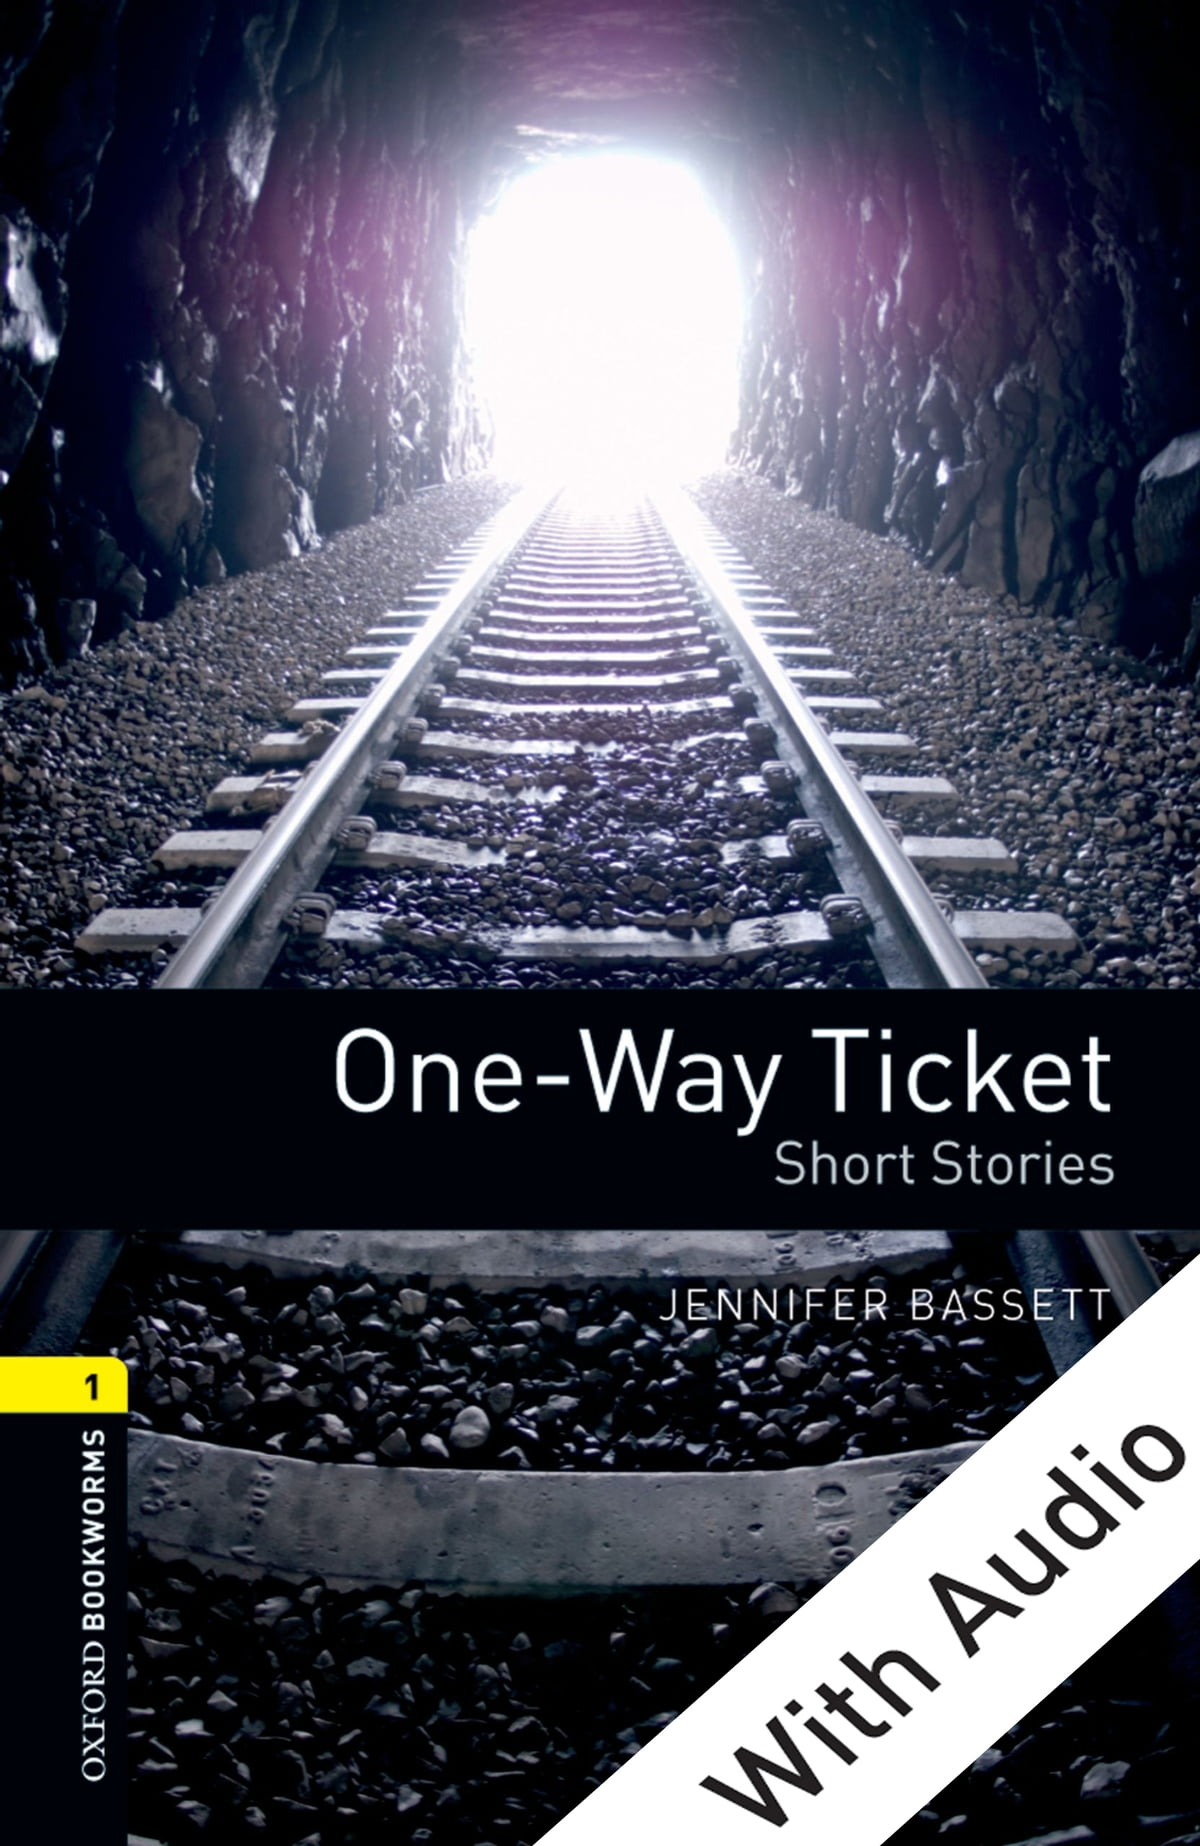 Oxford Bookworms Library One Way Ticket Short Stories With Audio Level 1 Oxford